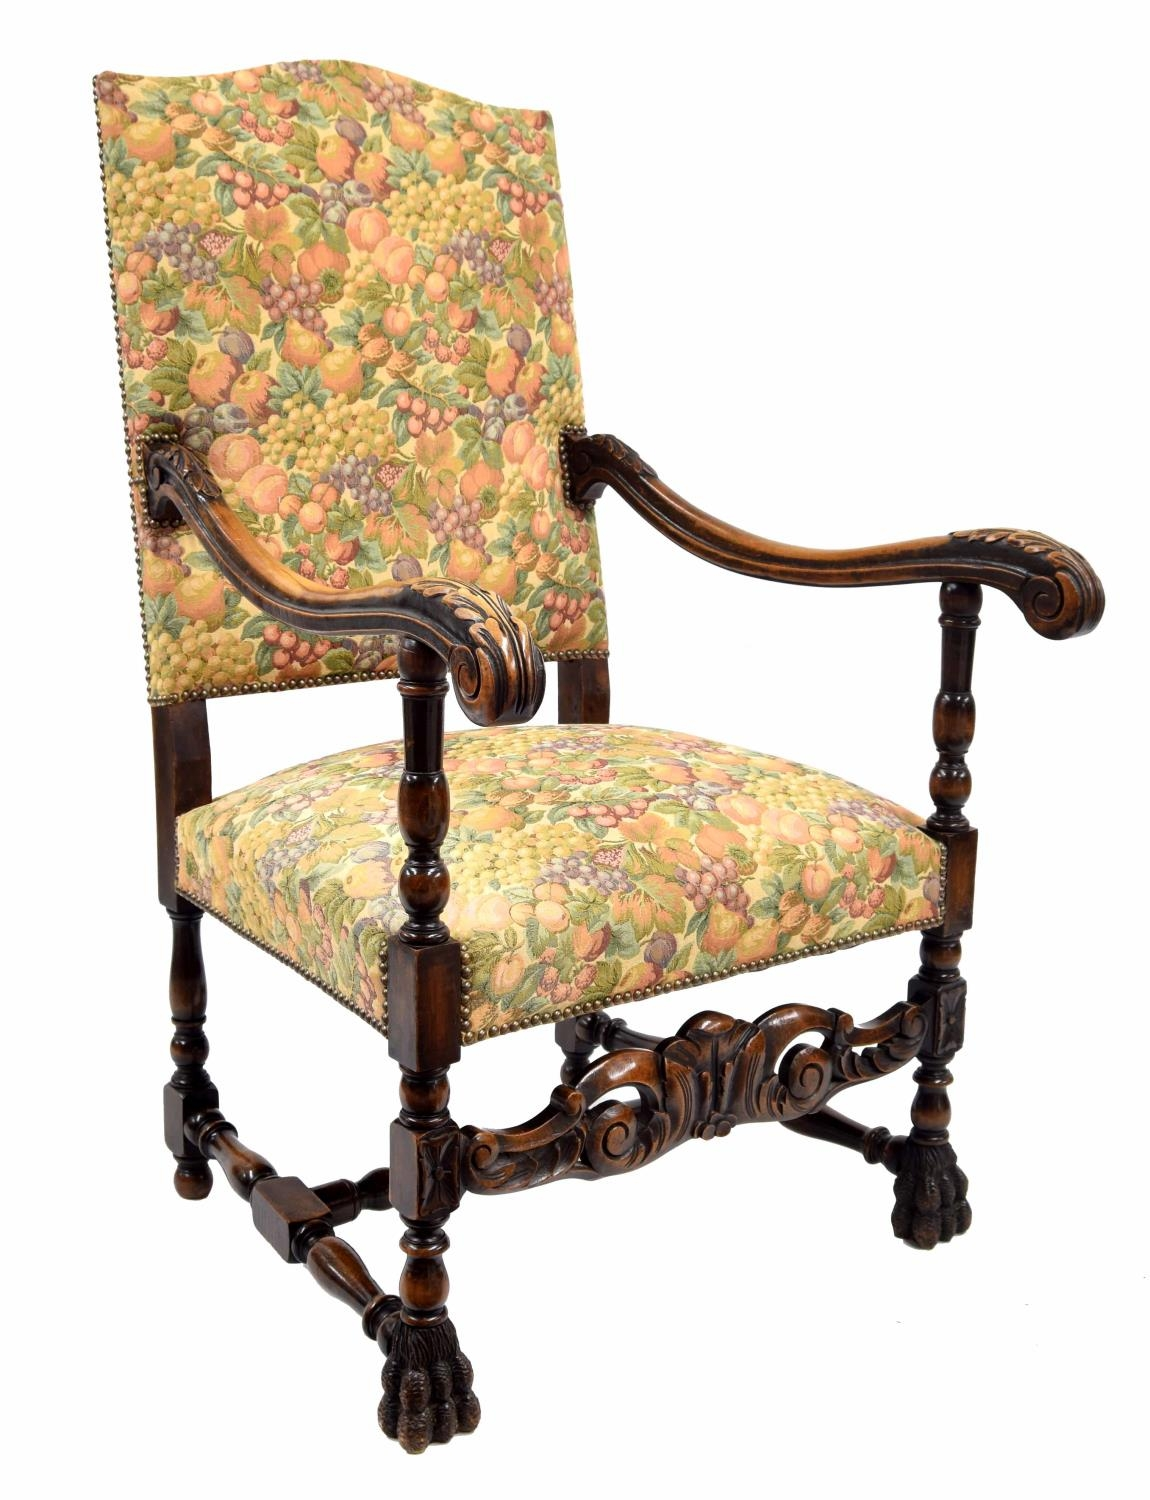 Carolean style upholstered throne armchair, the padded back and stuffover seat with modern